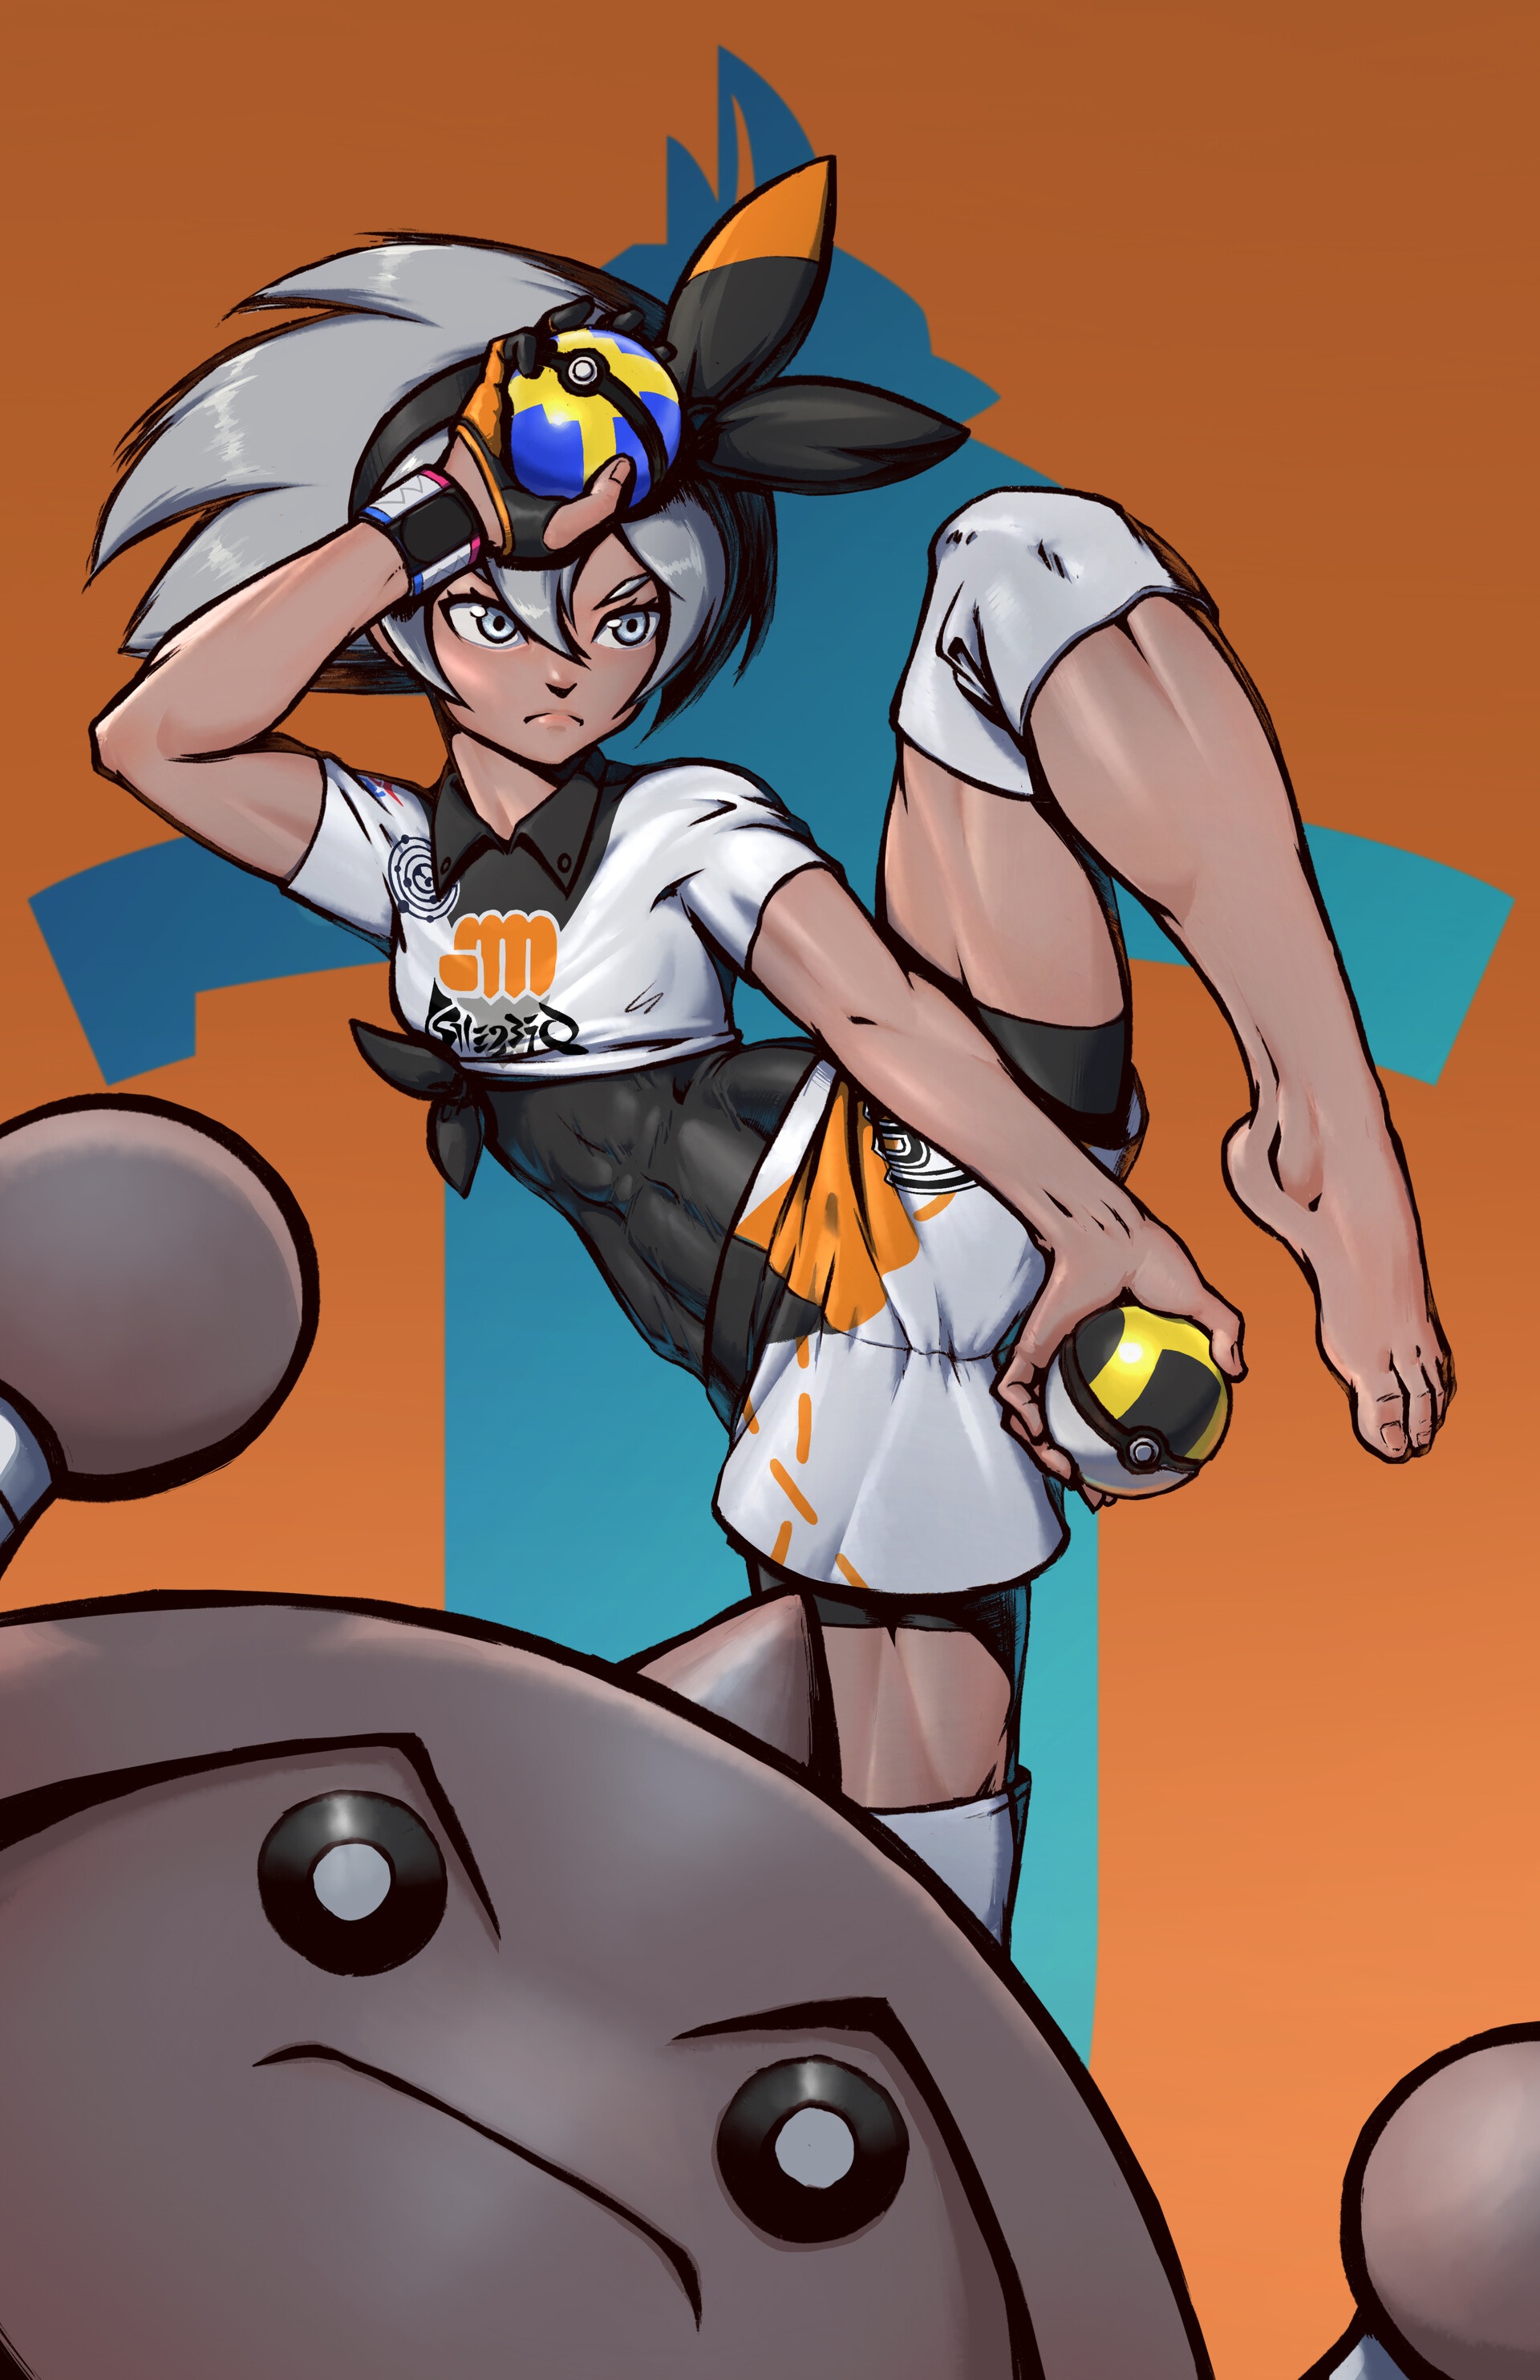 Hitmonlee glares at you disapprovingly, while you stare at Bea's abs.